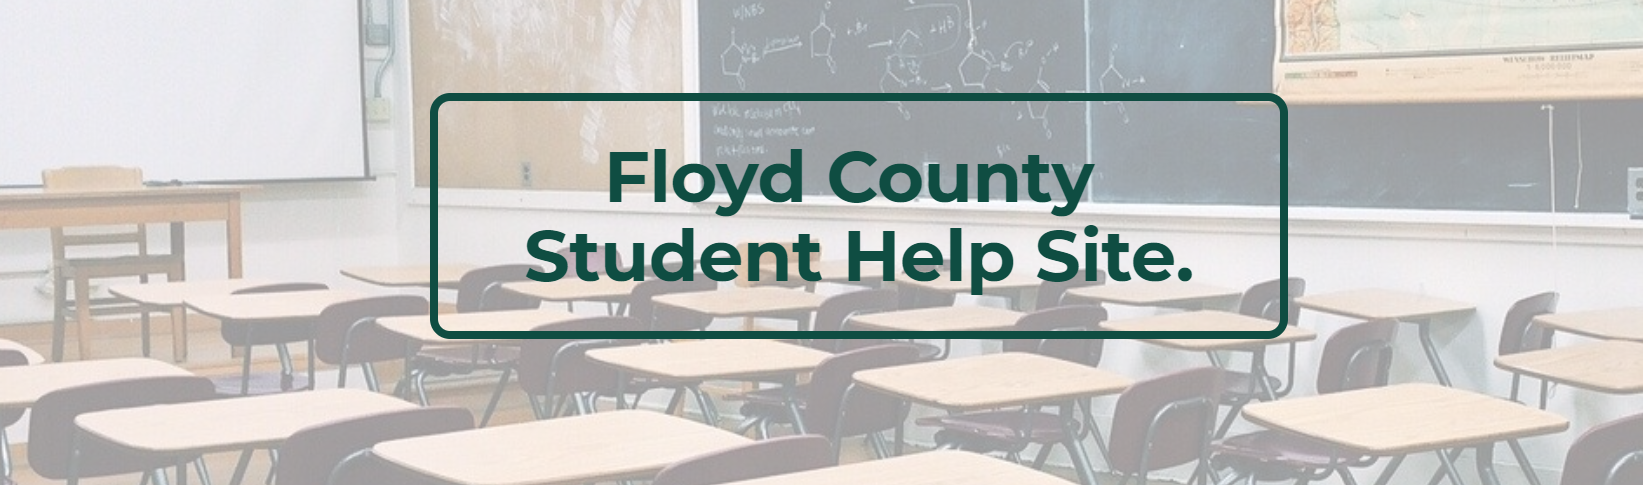 Floyd County Student Help Site